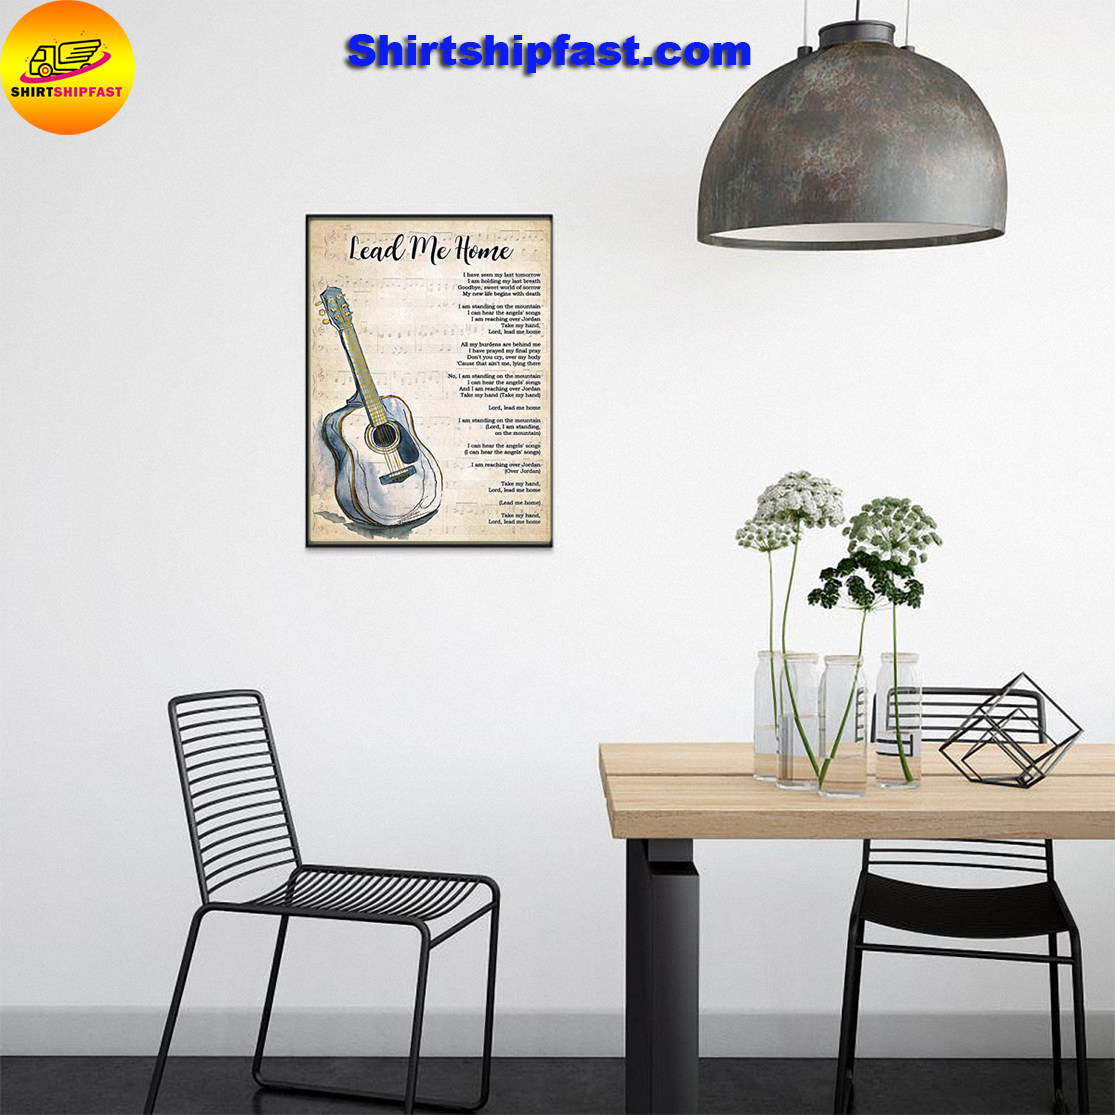 Guitar Lead me home lyrics poster - Picture 3